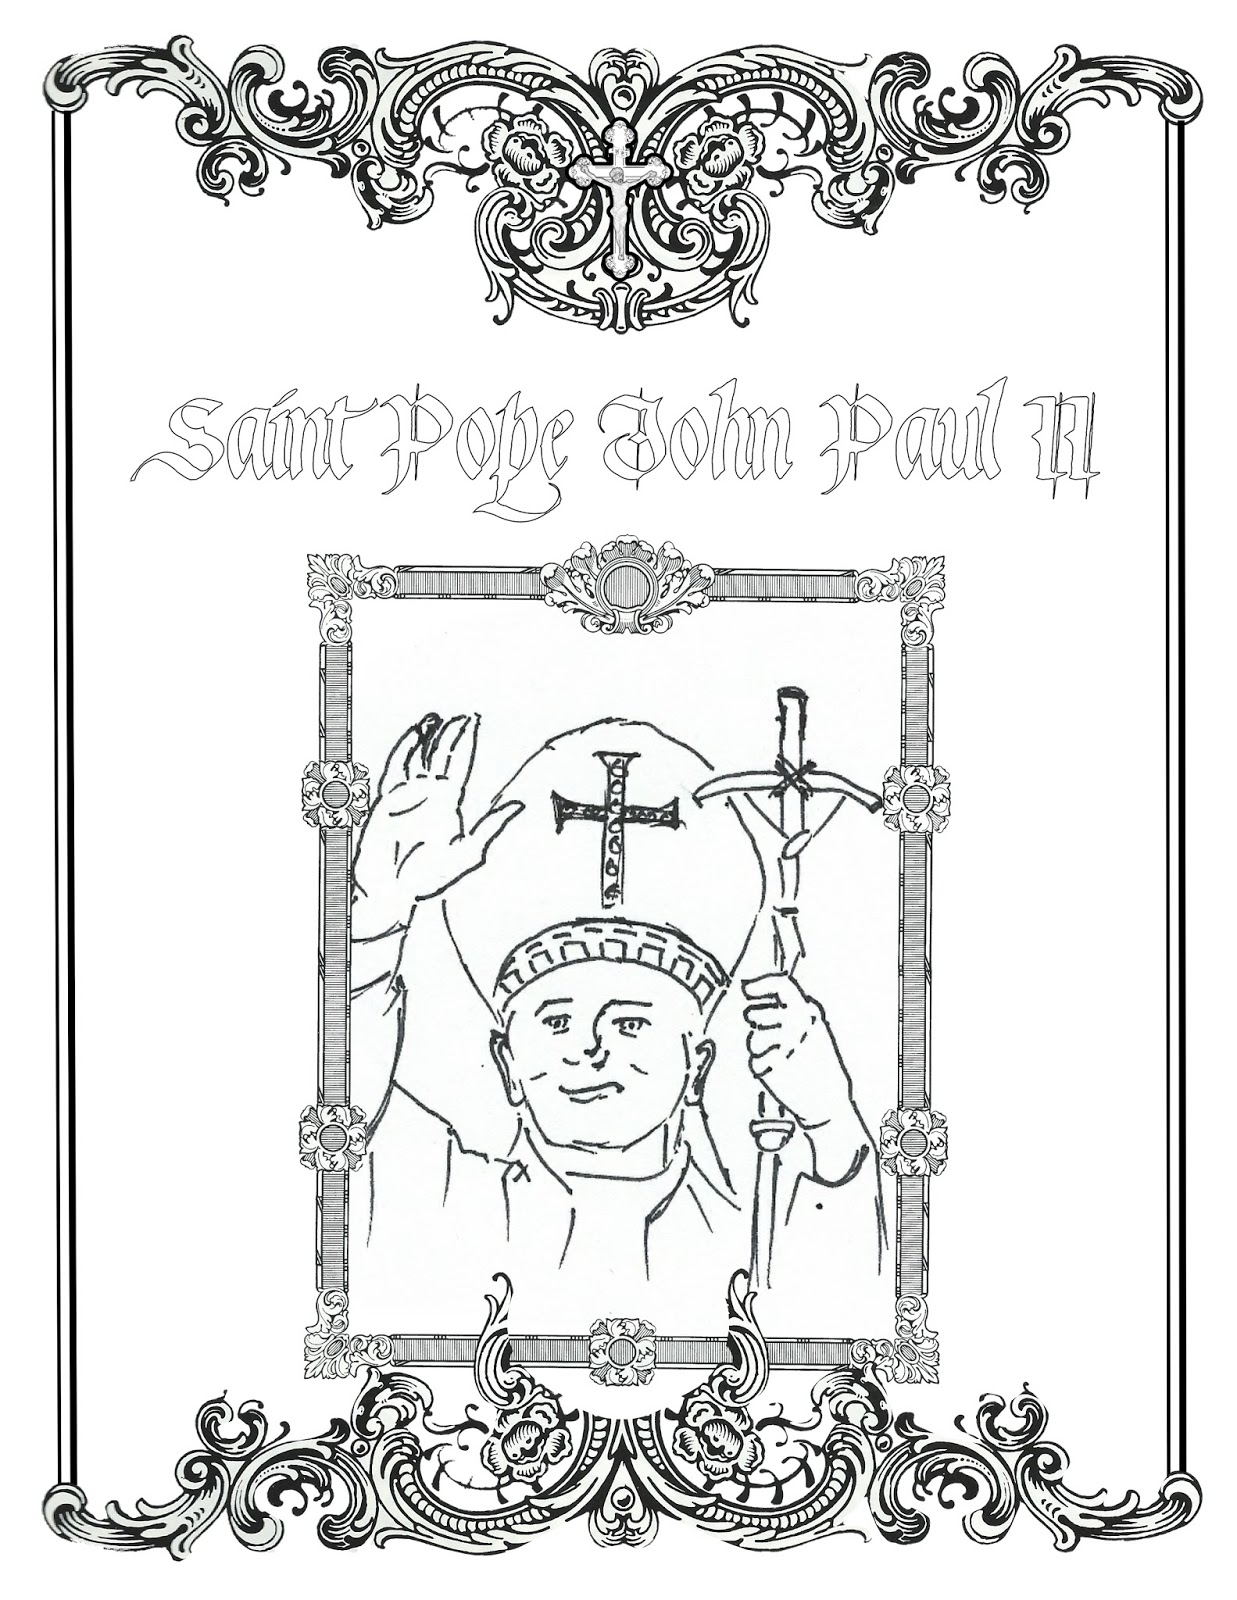 john paul ii coloring page - life love sacred art october 2015